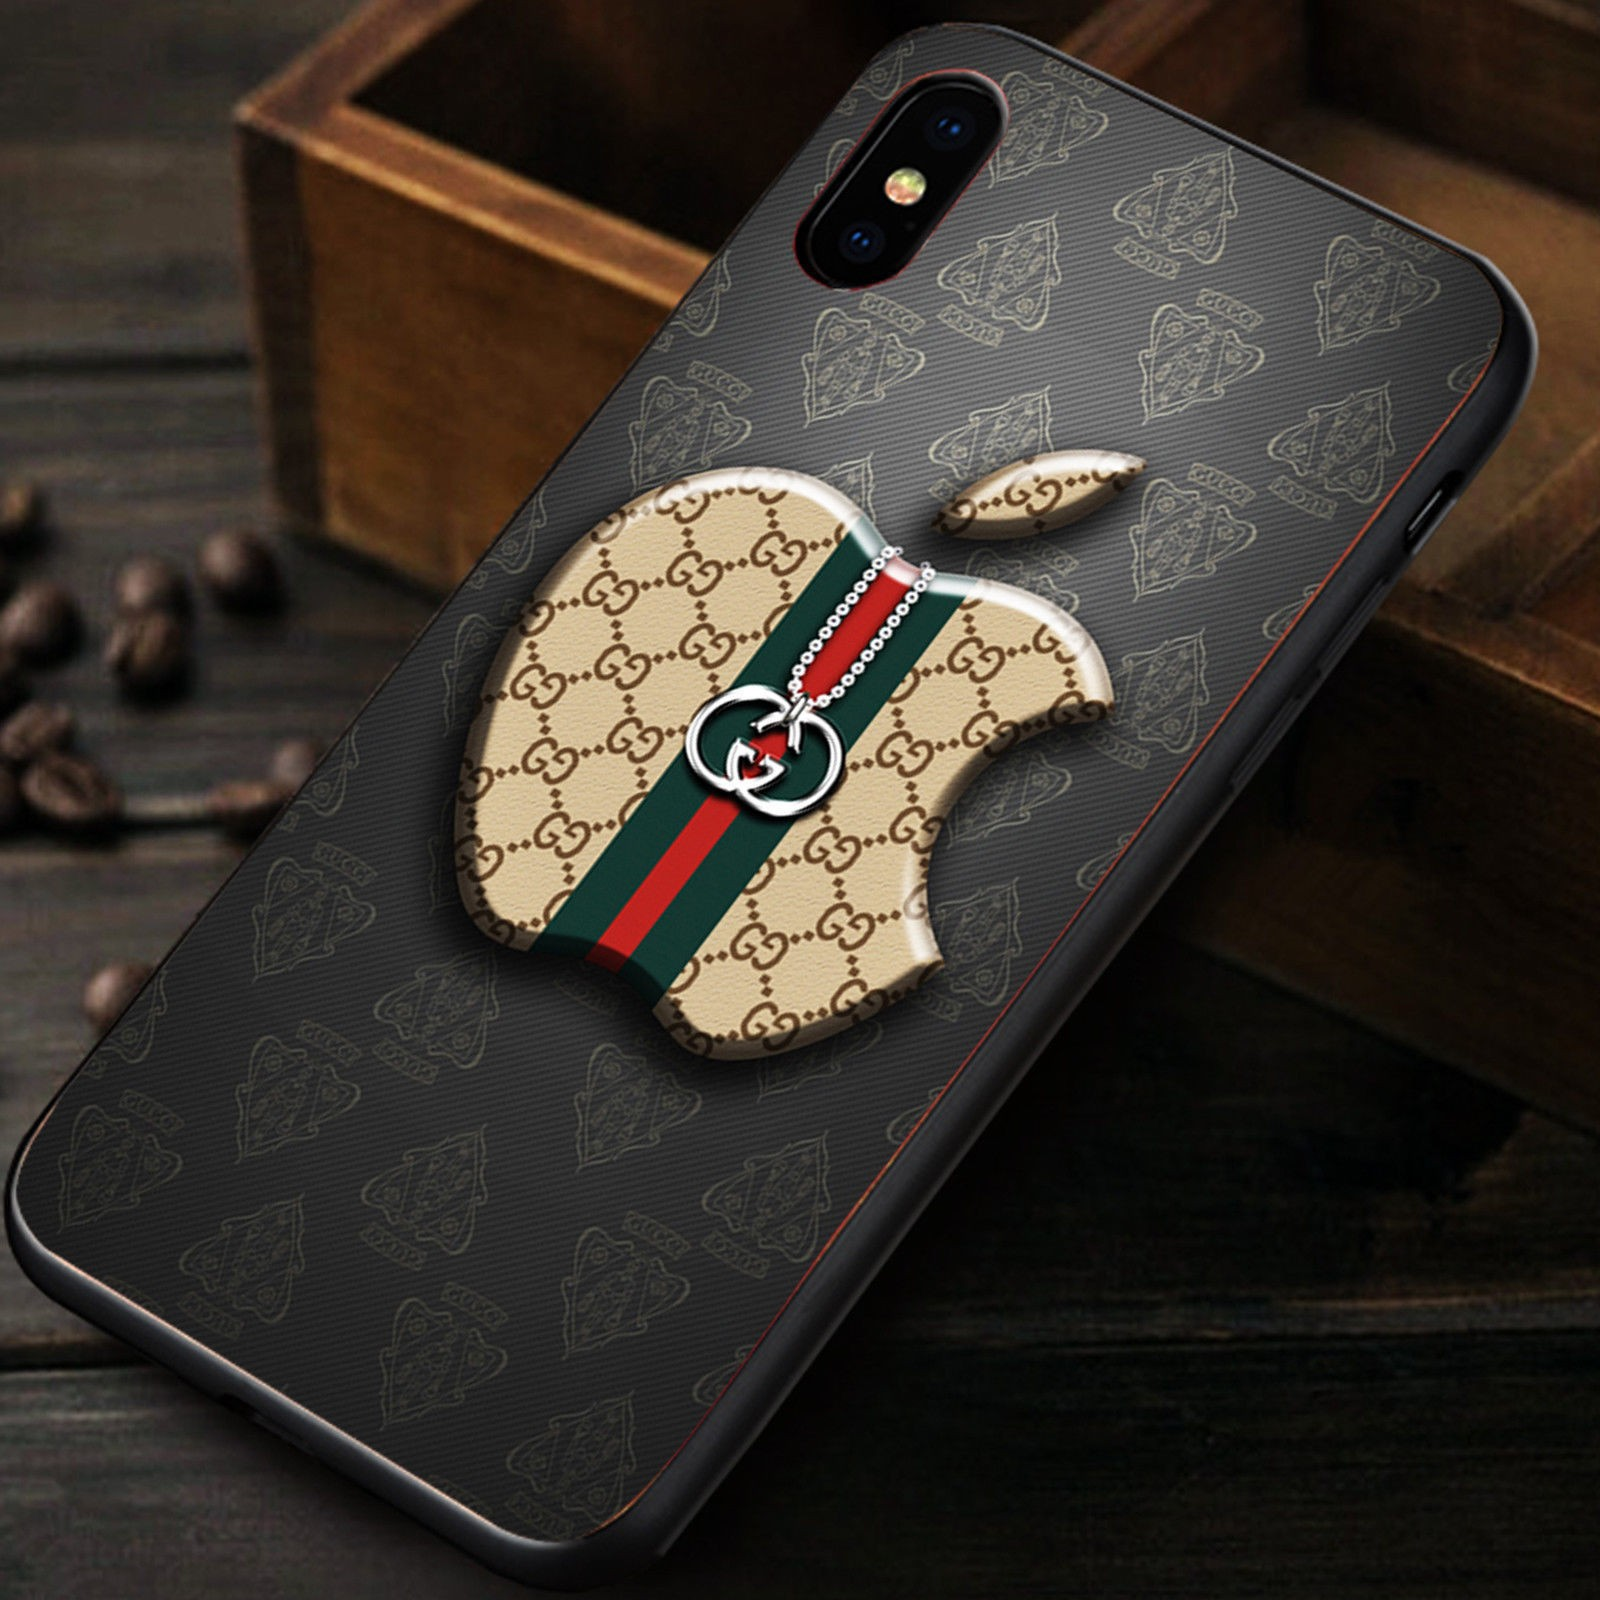 nuovo di zecca 65134 ad4dc Hot Gucci Apple Logo Cover Cases for iPhone 6 6s 6 Plus 6s Plus 7 7 Plus 8  8 Plus X XR XS Max Cover Case sold by BeryCases